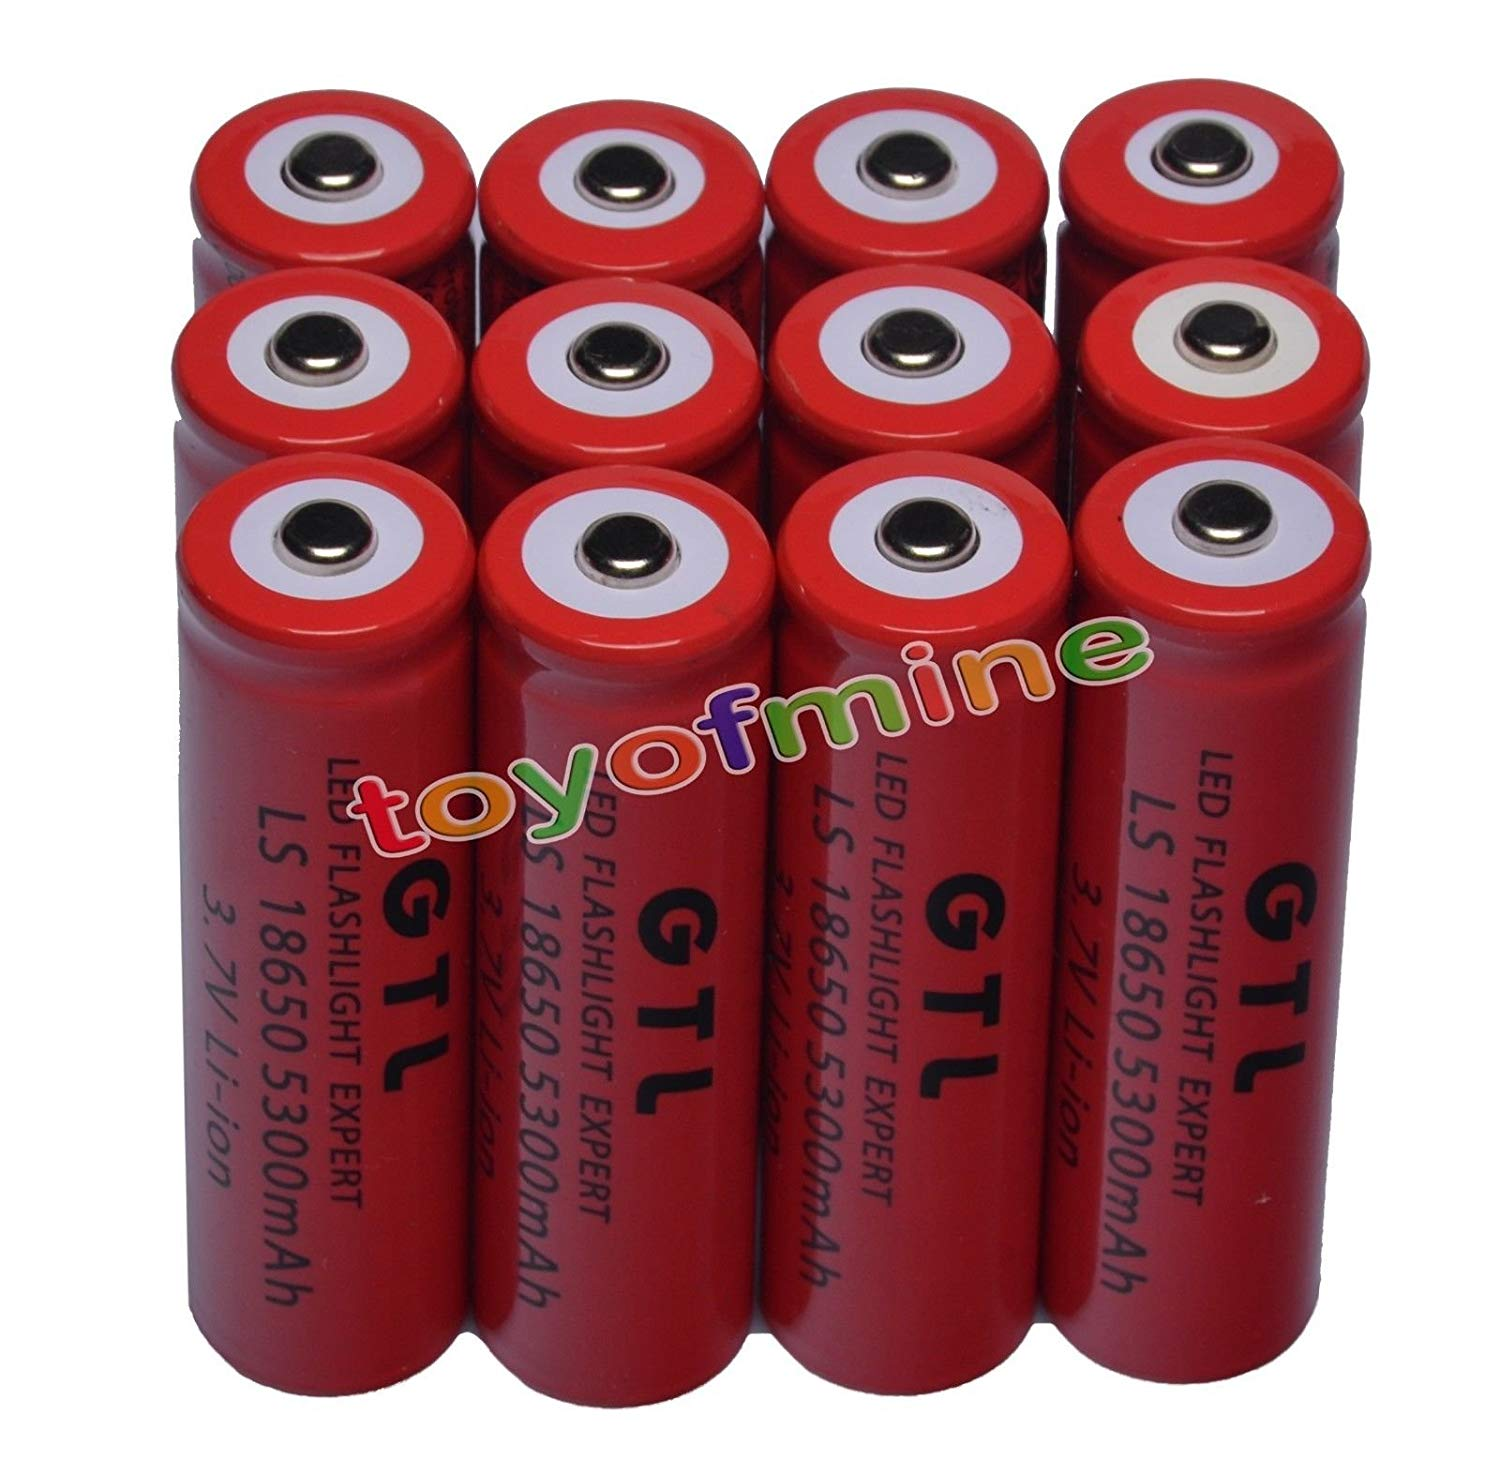 12x 3.7V 18650 GTL Li-ion 5300mAh Red IncShop Rechargeable Battery for LED Torch USA